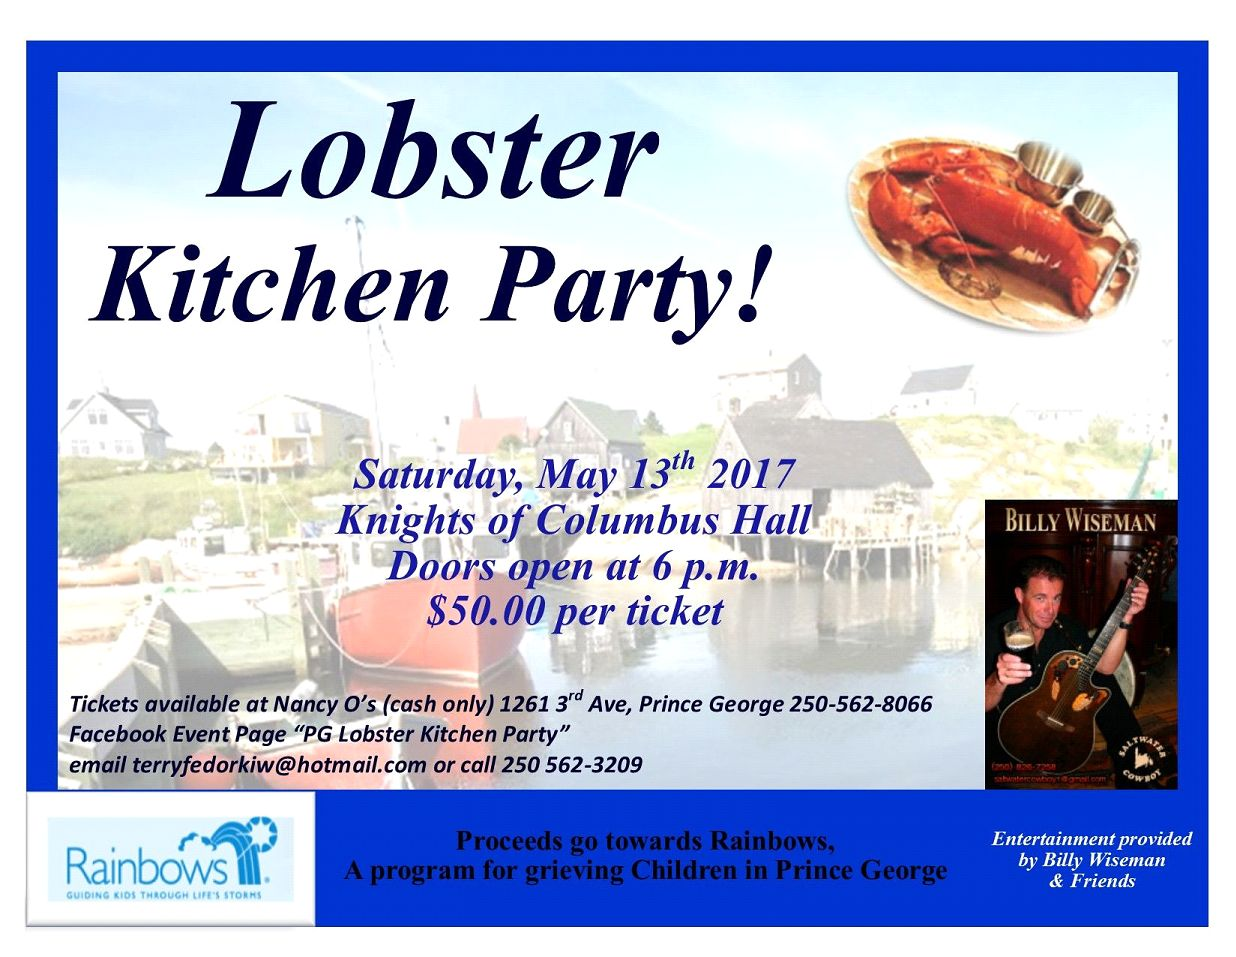 lobsterkitchenparty